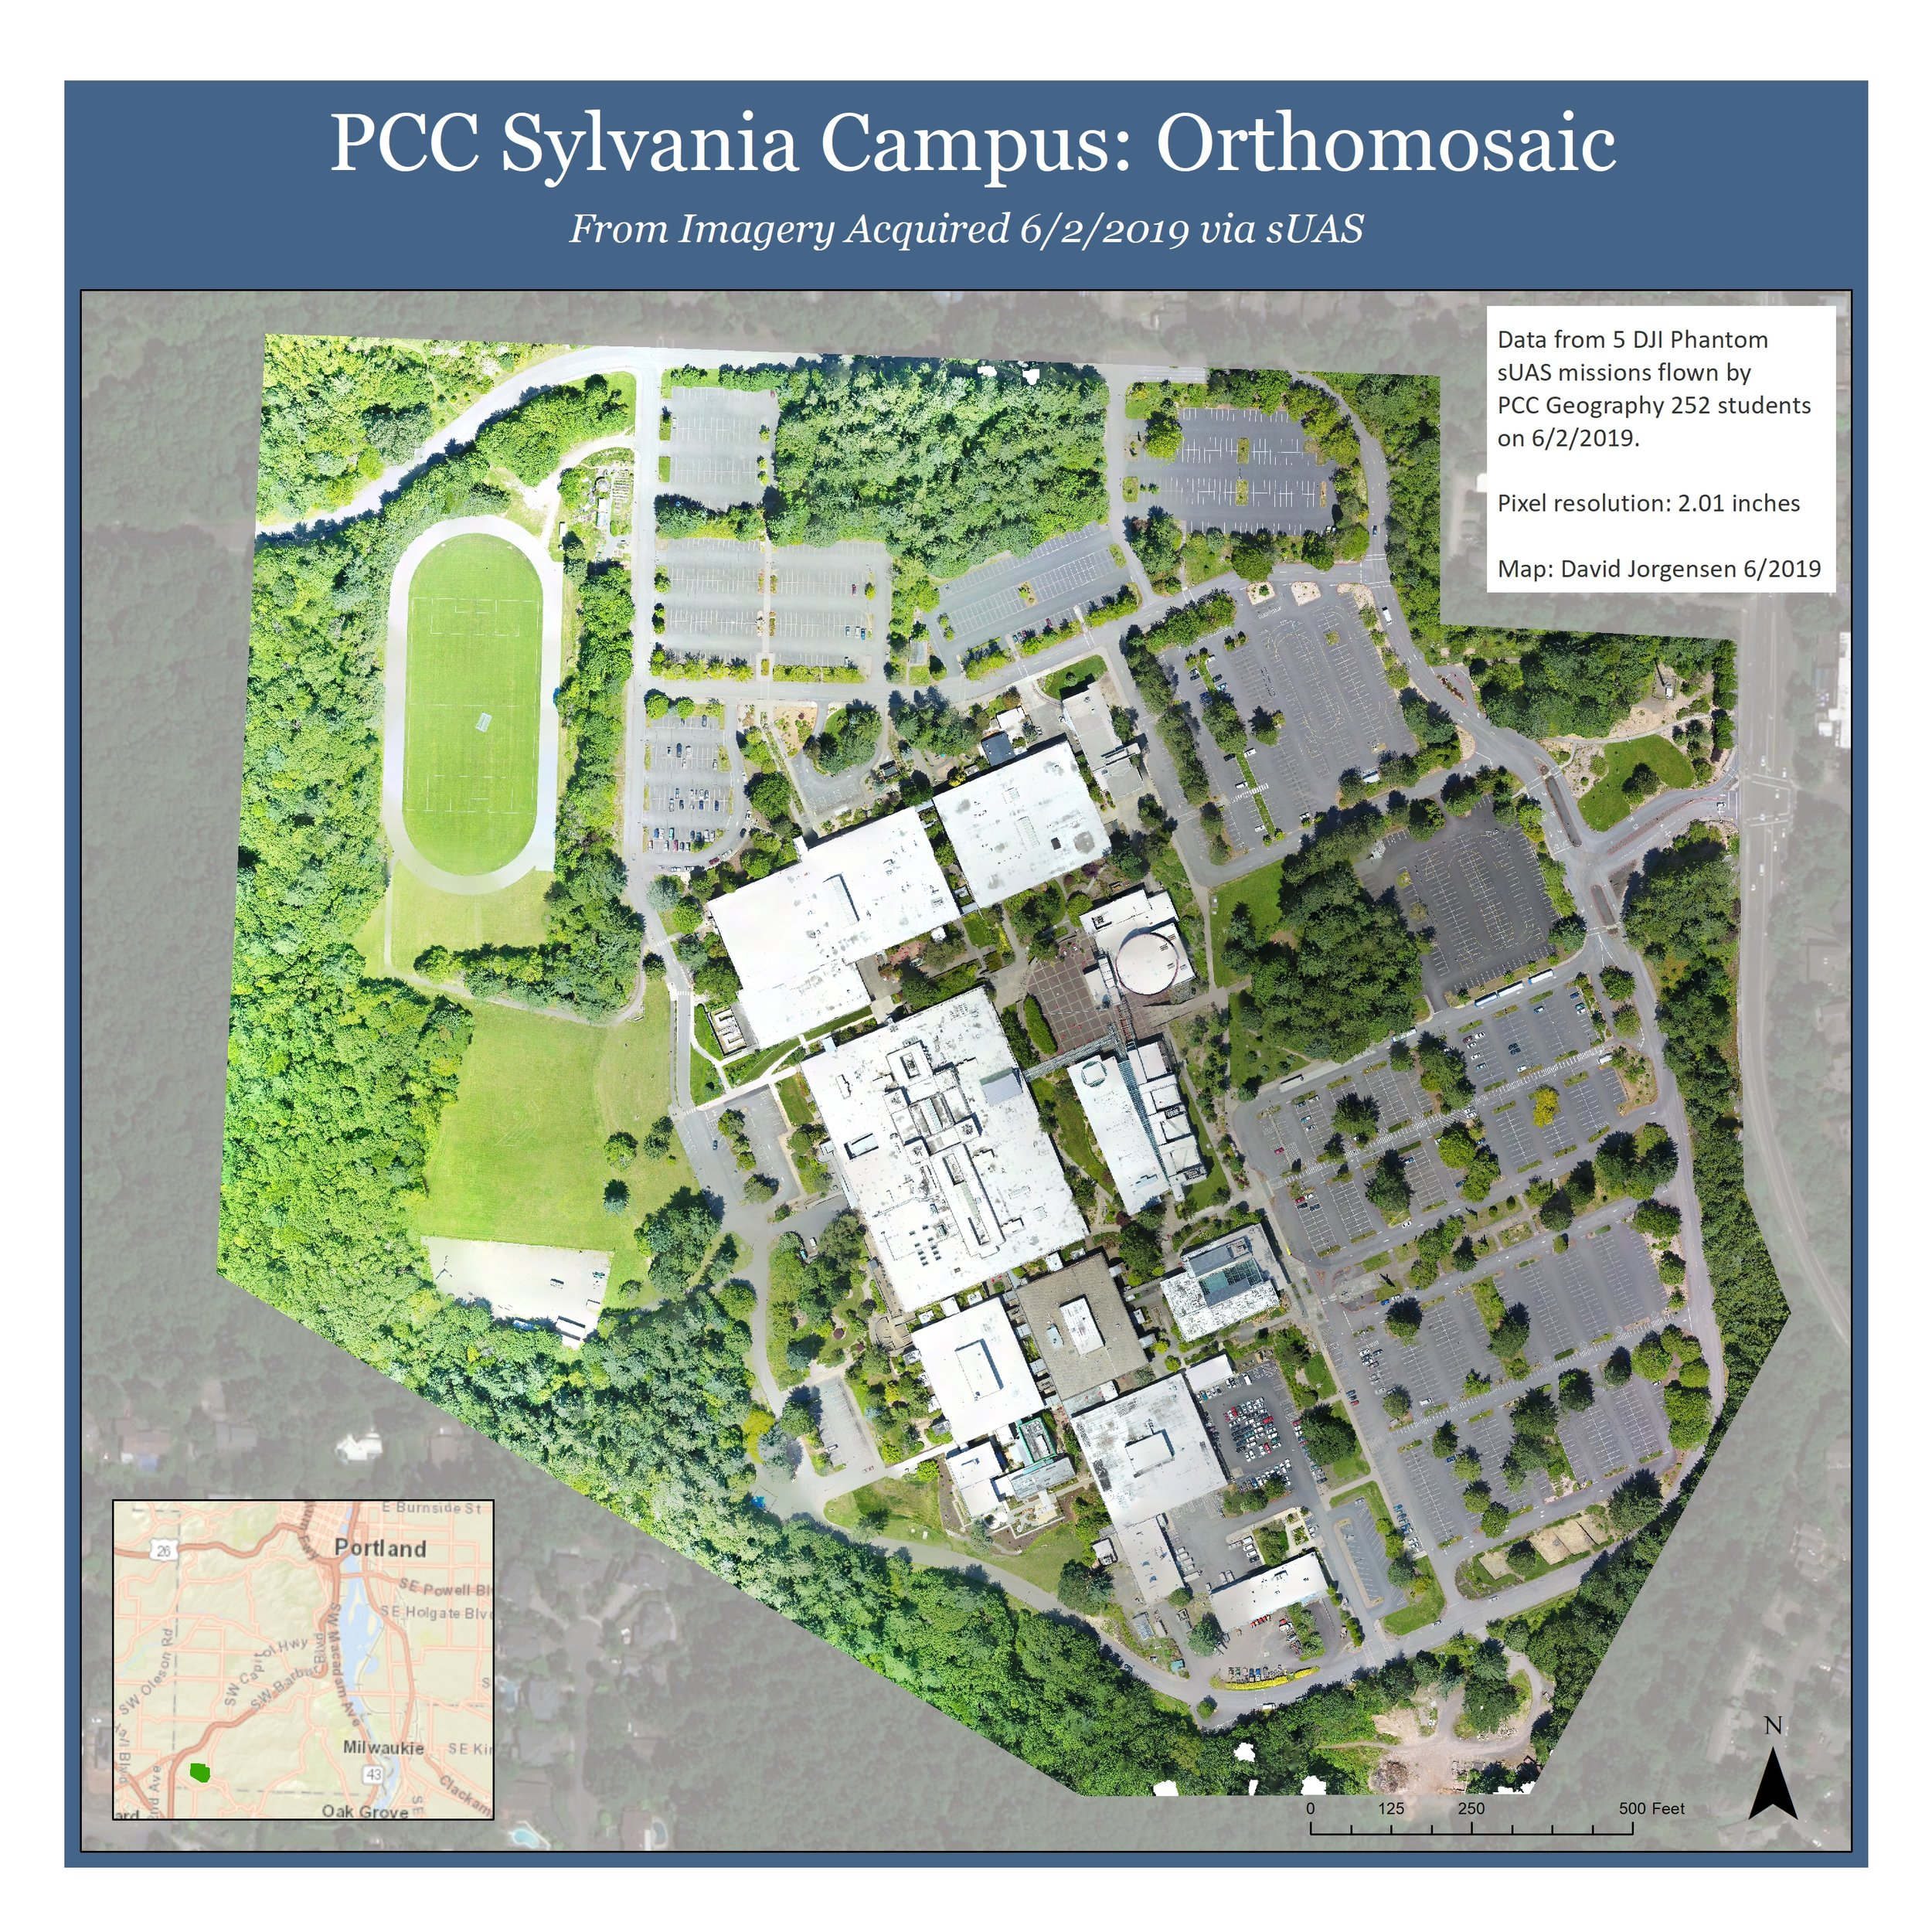 PCC Sylvania Orthomosaic - Planning and executing a multi-team drone flight operation and processing the acquired data to produce a highly accurate Orthomap of the PCC Sylvania Campus.